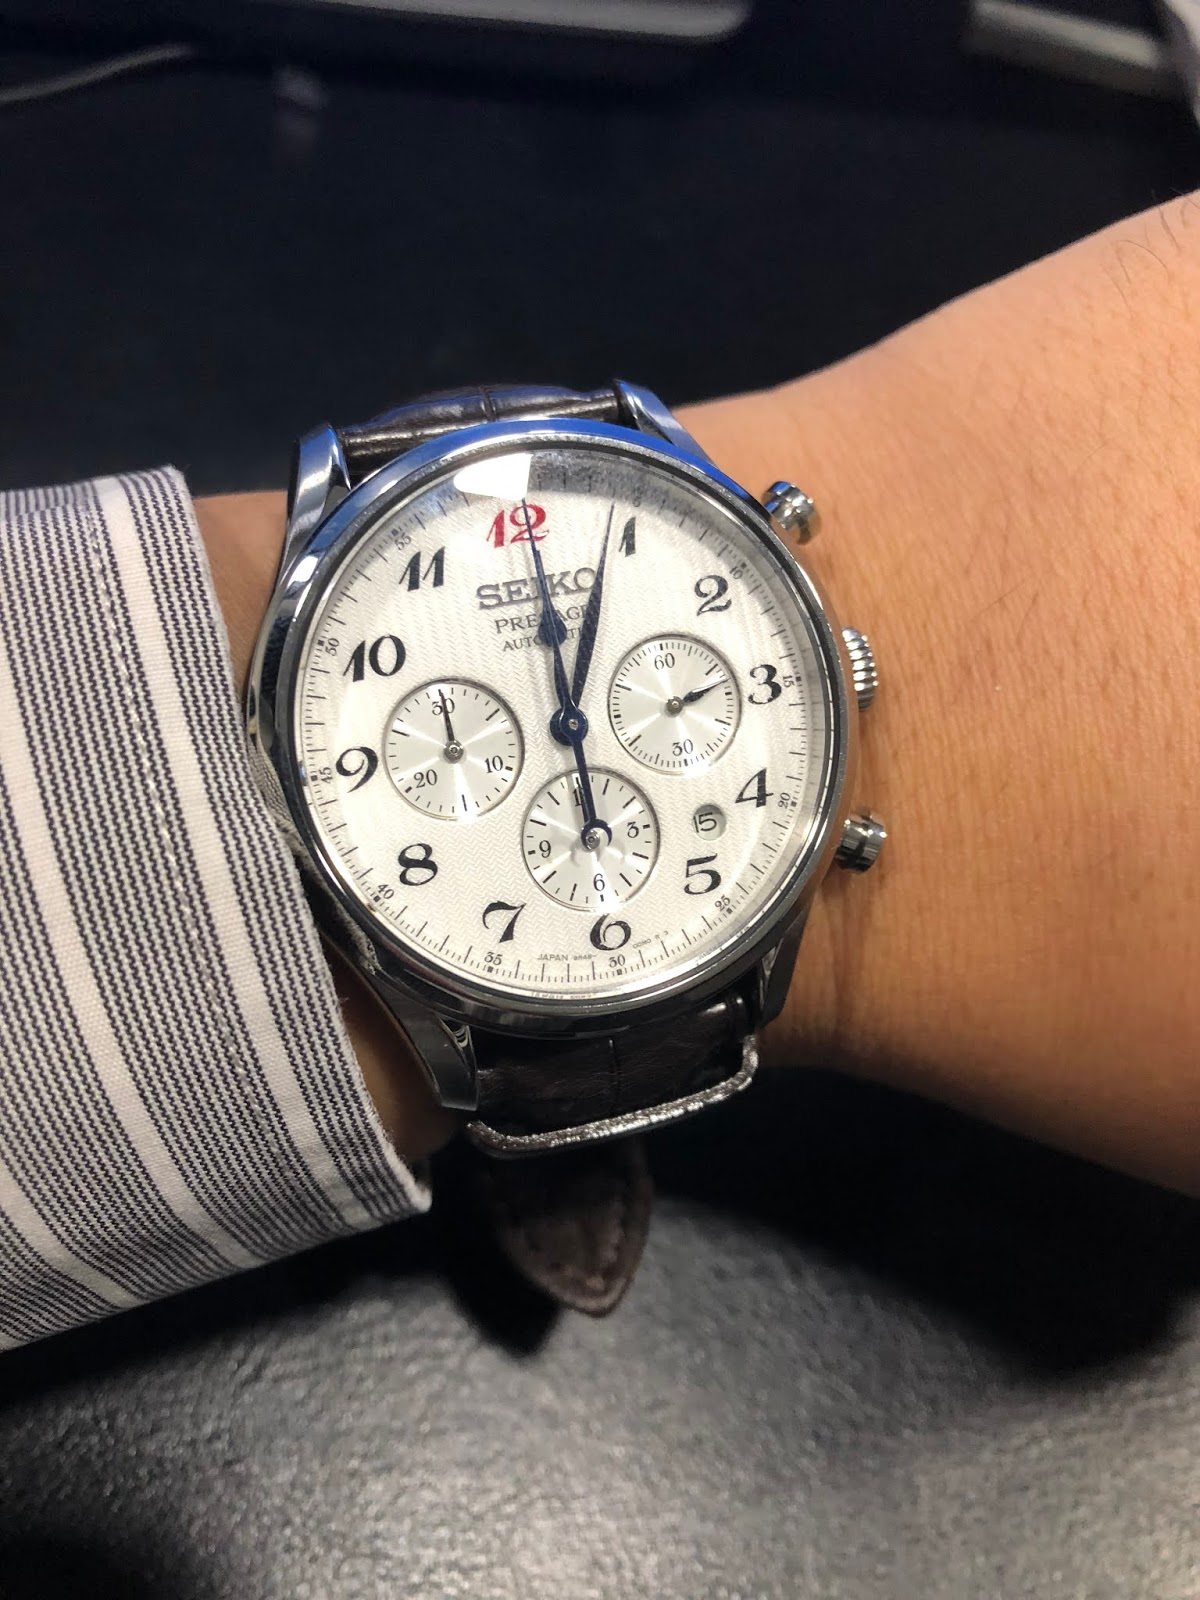 6a2f6dacad1cb Seiko Presage Chronograph SRQ025J1 (similar to SARK011) - It has that  formal ambiance and sophistication that not many watches have in its price  range